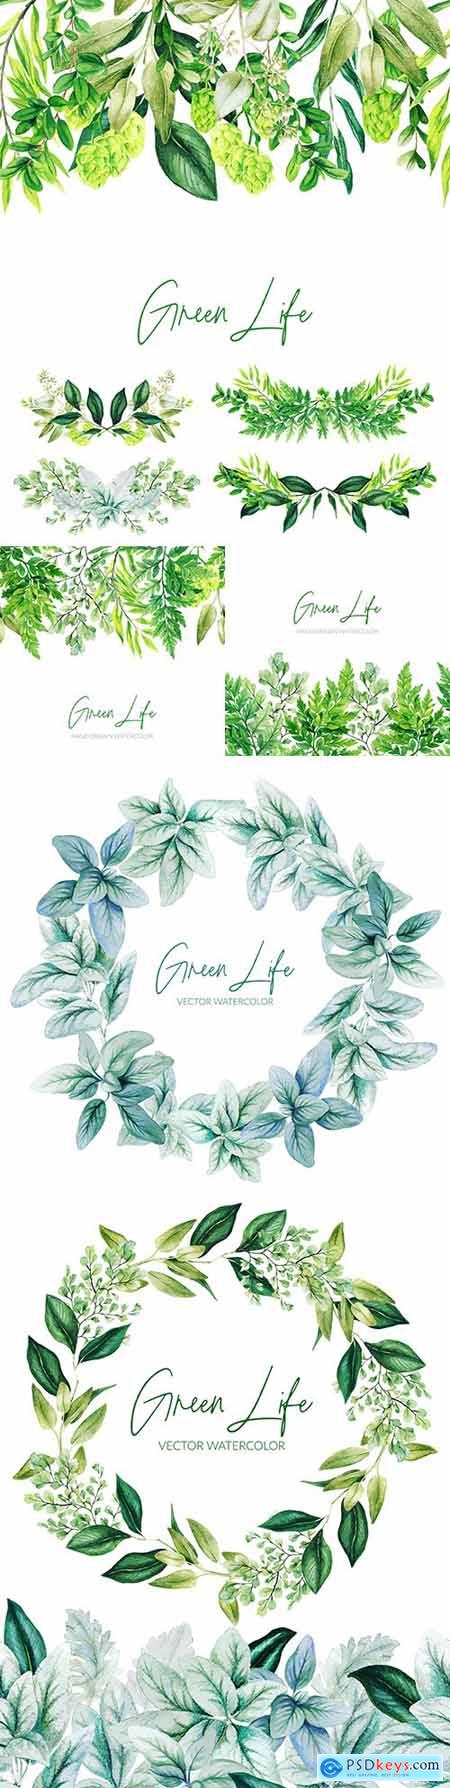 Watercolor green leaves and wreath of branches with leaves